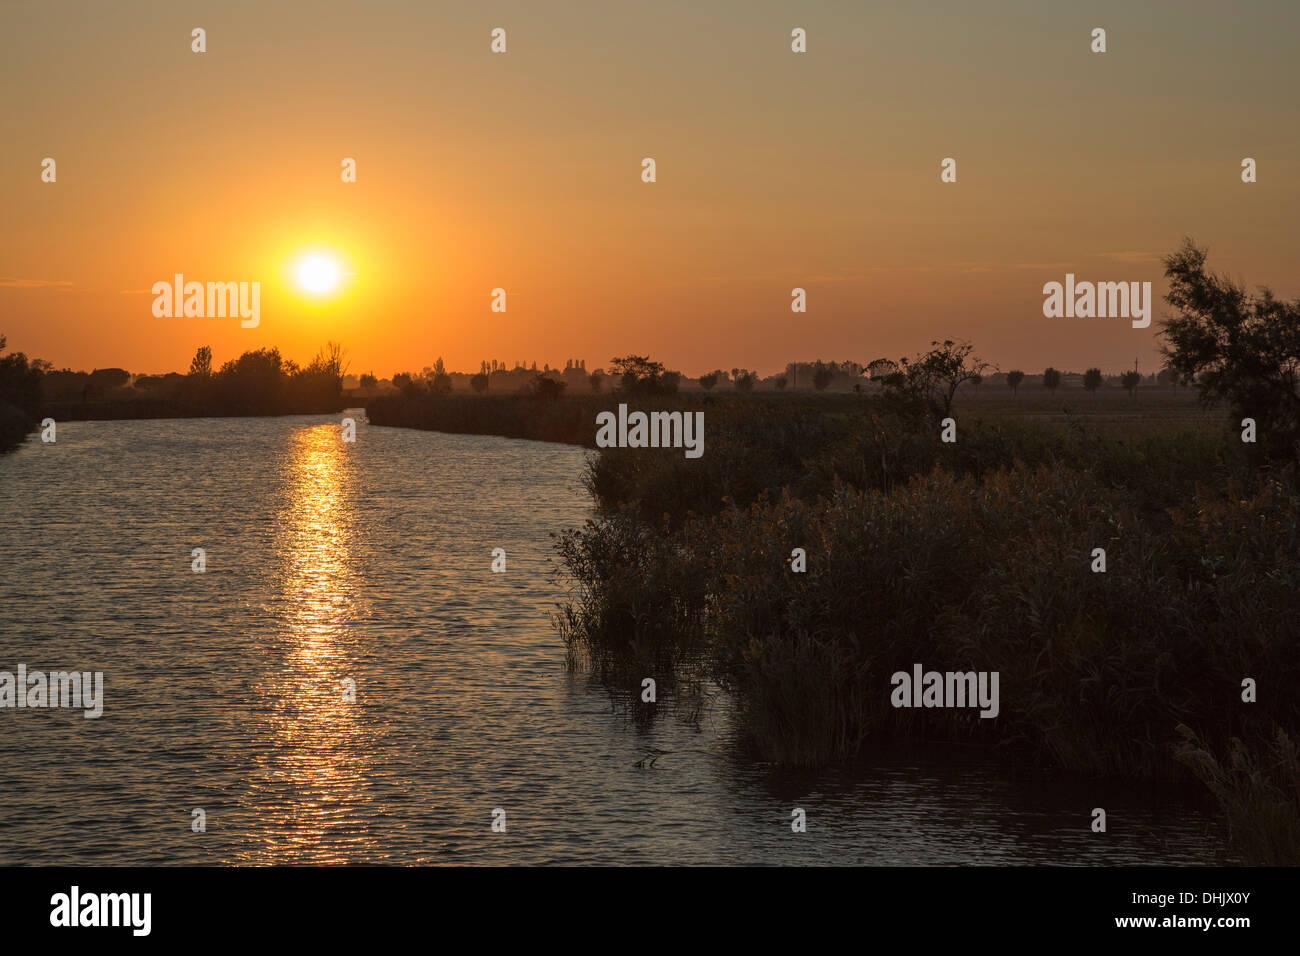 Canale Siloni at sunset, Portegrandi, Veneto, Italy, Europe - Stock Image